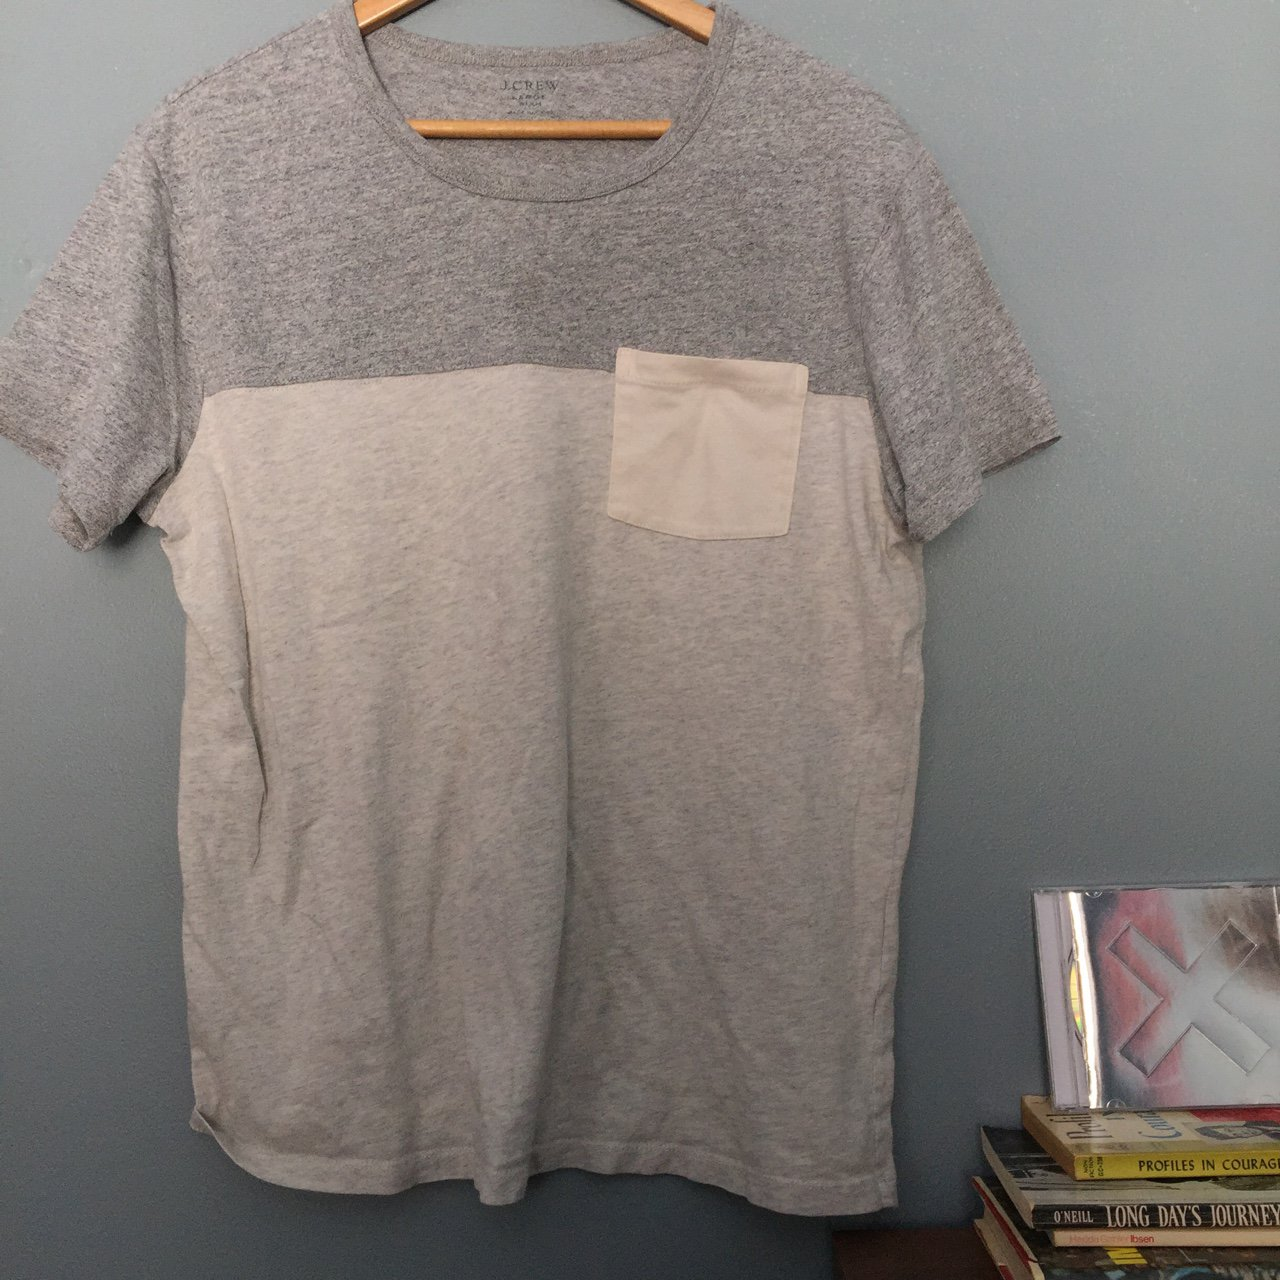 eaebfc33a57 Heather grey color blocked j.crew